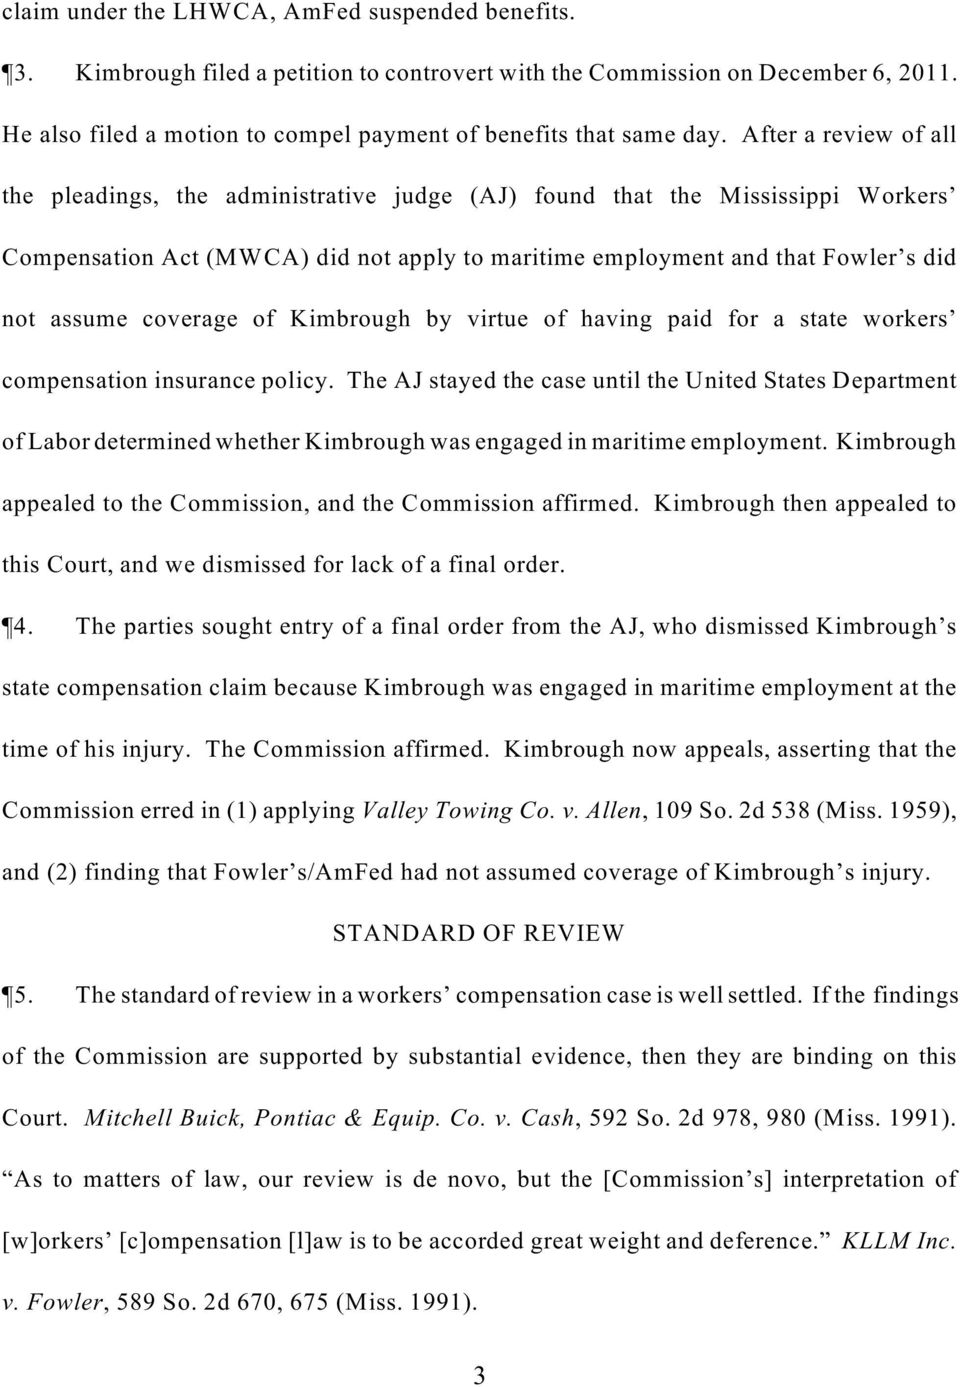 After a review of all the pleadings, the administrative judge (AJ) found that the Mississippi Workers Compensation Act (MWCA) did not apply to maritime employment and that Fowler s did not assume